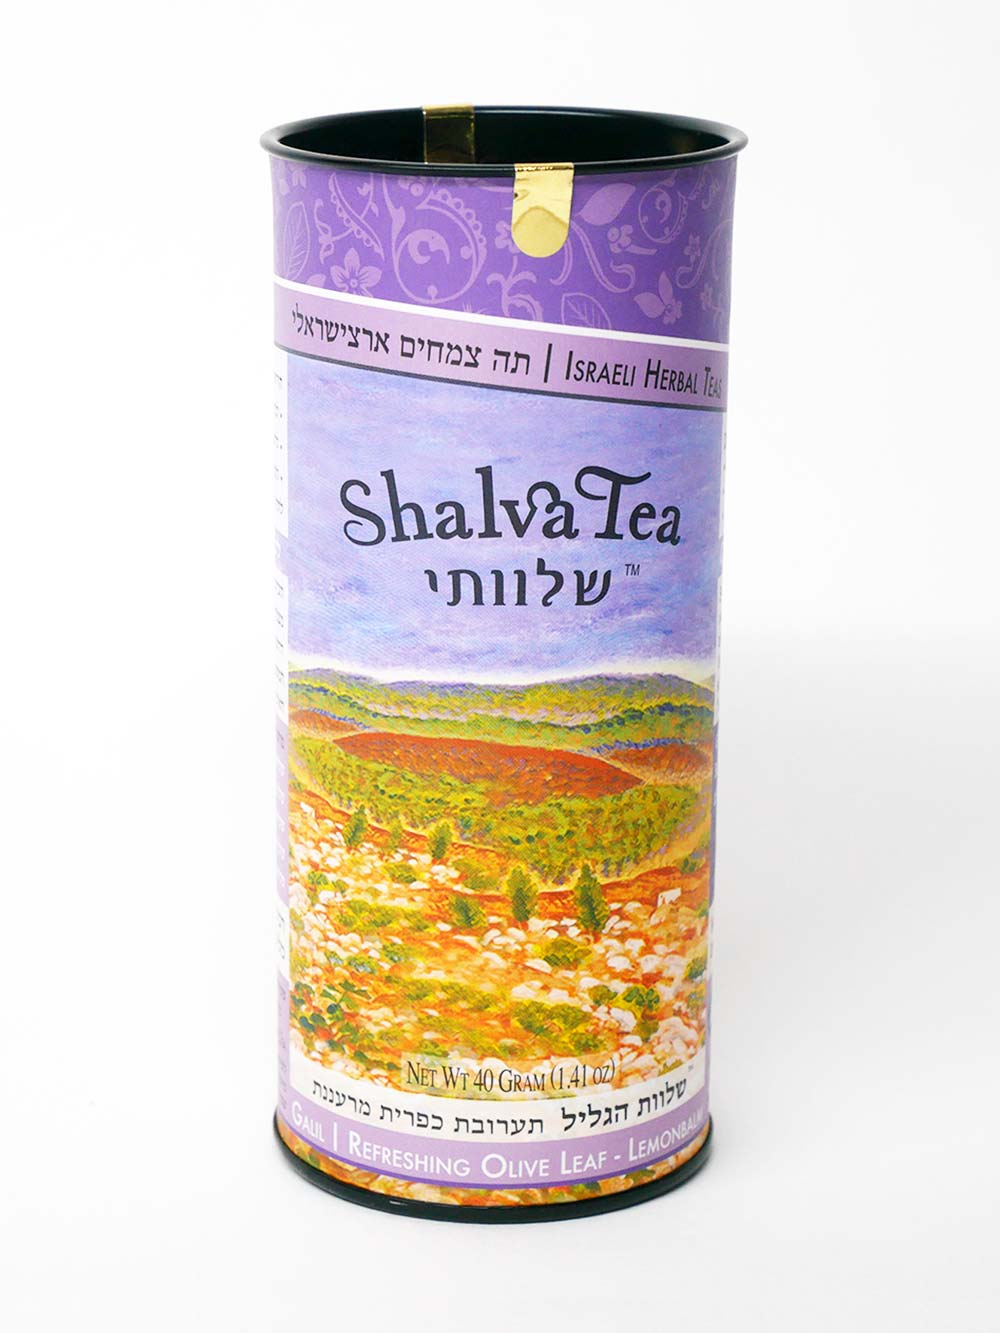 Refreshing Olive Leaf-Lemonbalm | Galil Blend (20 Teabags) - ShalvaTea Kosher Israeli Herbal Teas